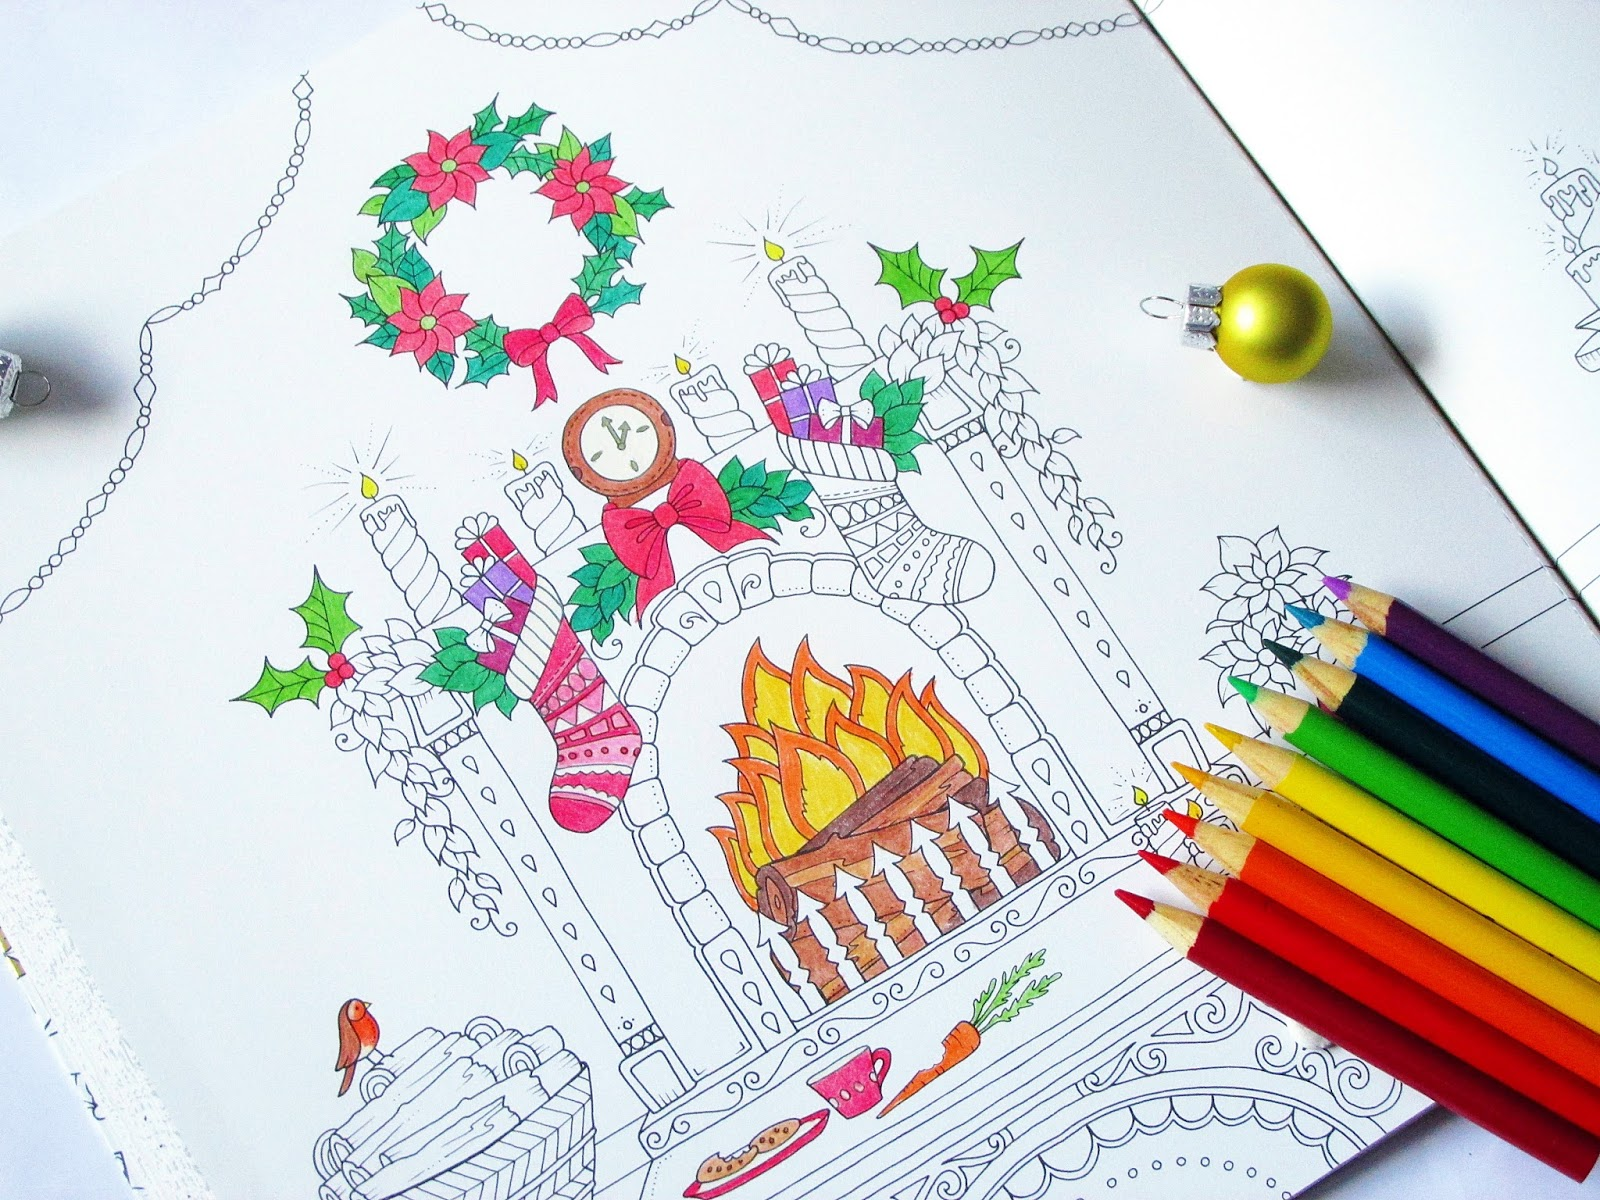 Johanna S Christmas Coloring Book With Basford Adult Colouring Review